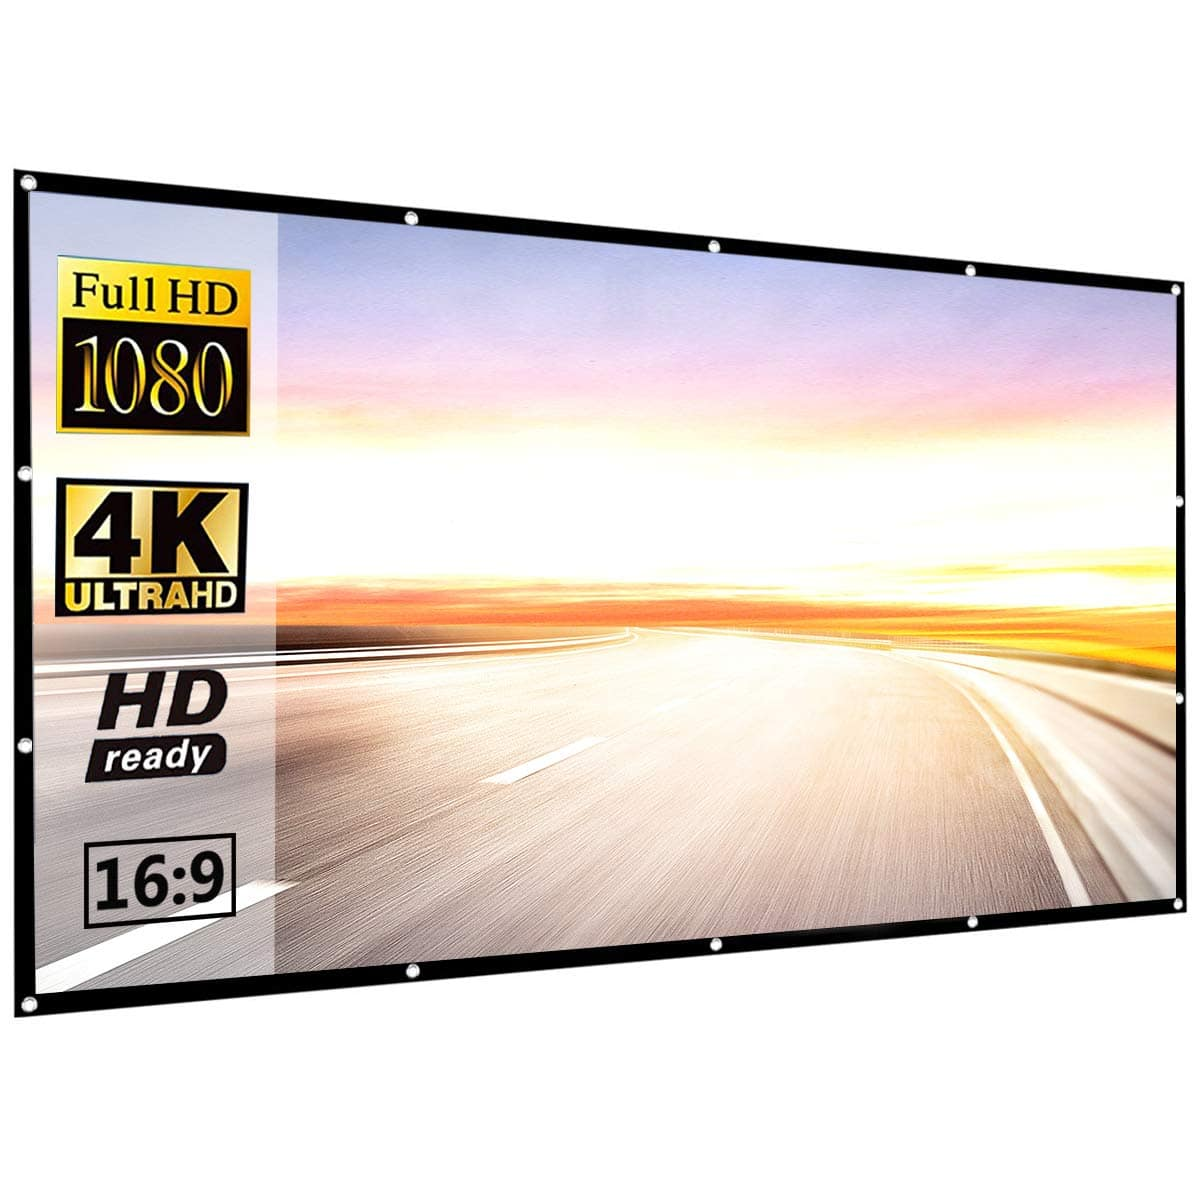 120 Inch 16:9 HD Projector Screen, P-JING Portable Video Screen Widescreen Foldable Anti-Crease Indoor Outdoor Projector $22.97